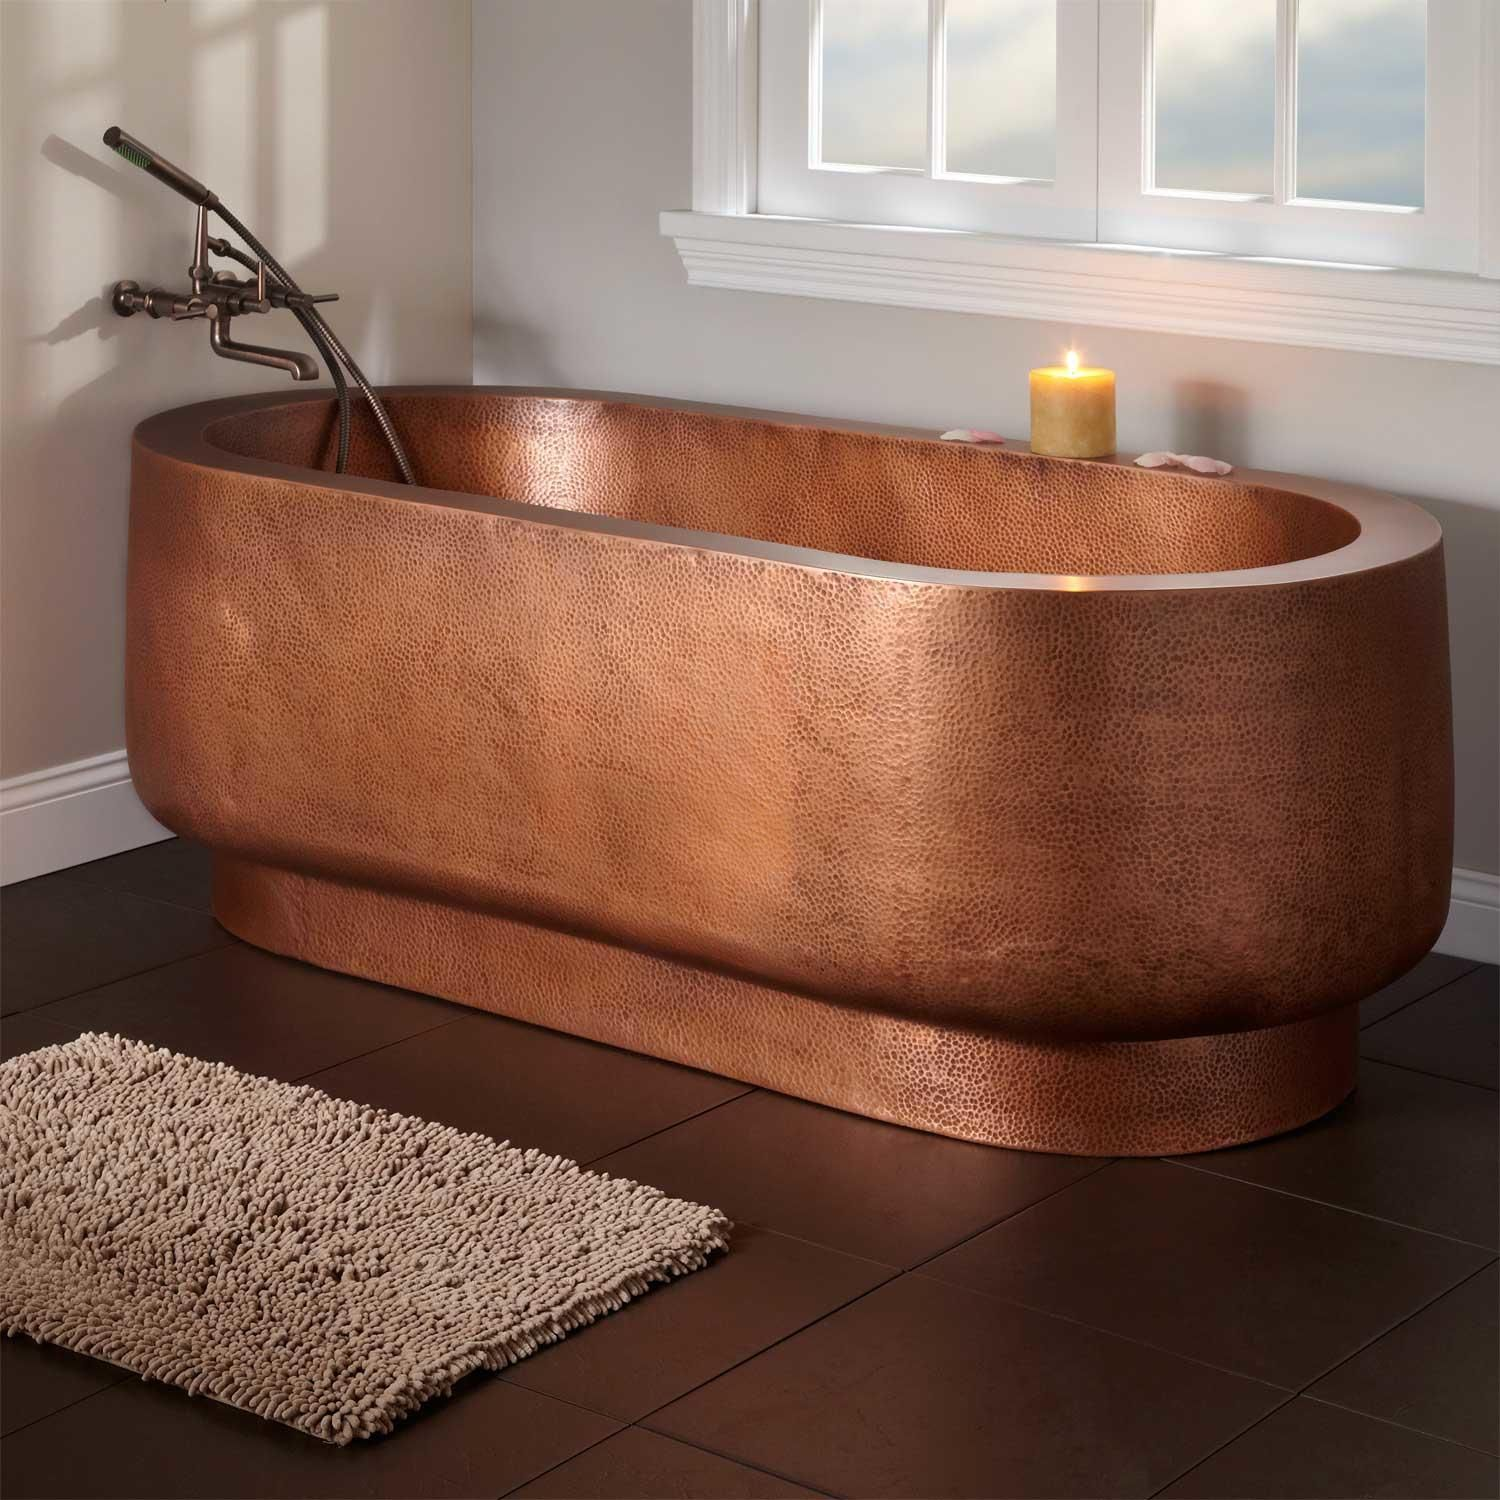 72 Teshio Double Wall Hammered Copper Tub No Faucet Holes Copper Tub Hammered Copper Tub Tub